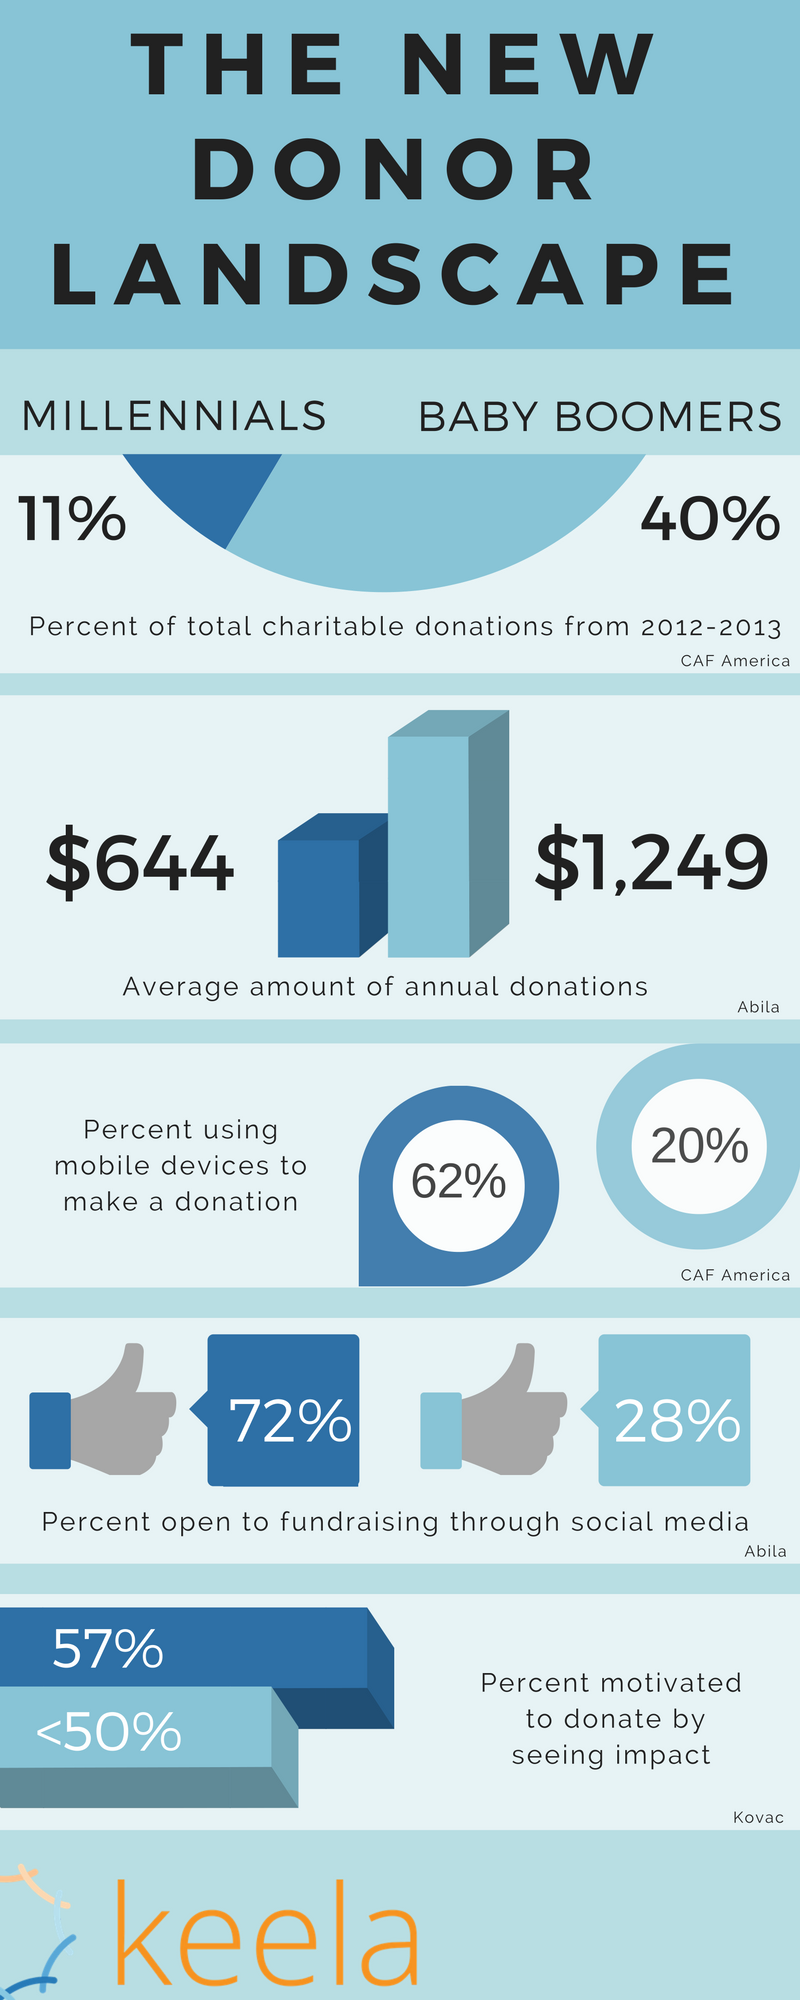 Changing Donor Landscape: Millennials vs. Baby Boomers